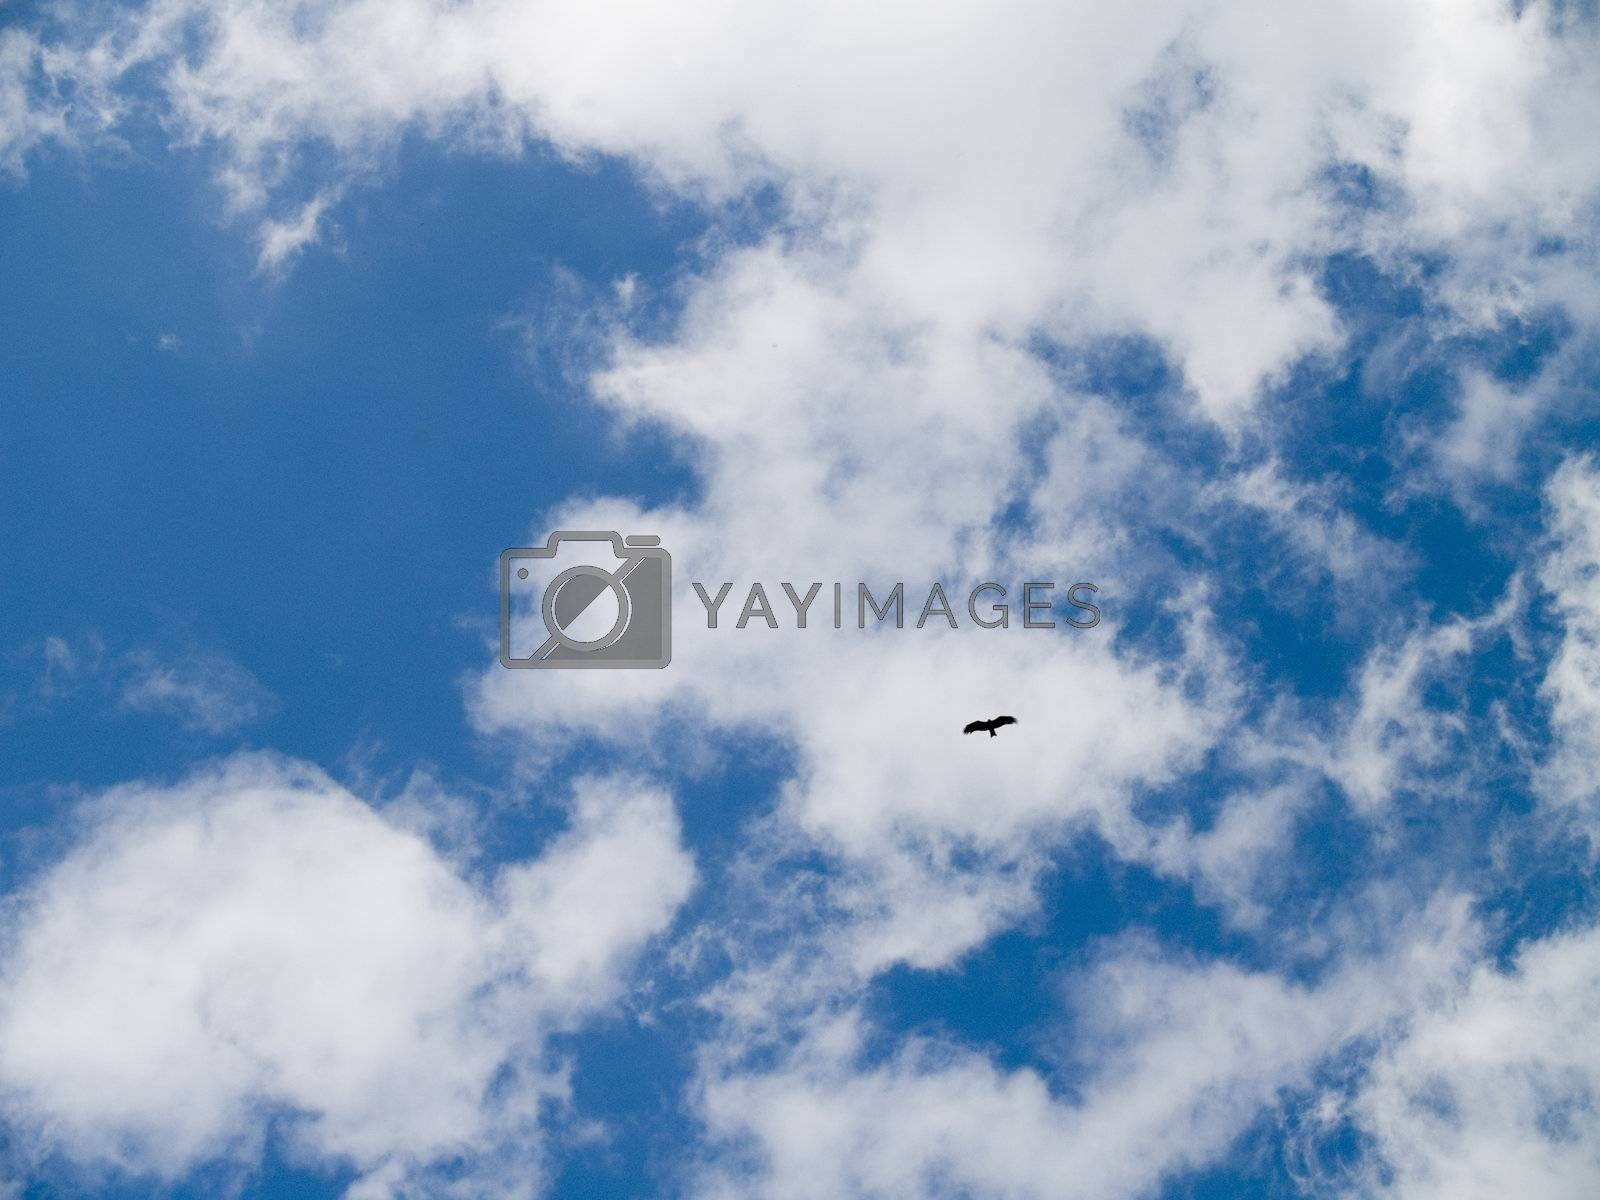 The blue sky, beautiful white clouds and bird